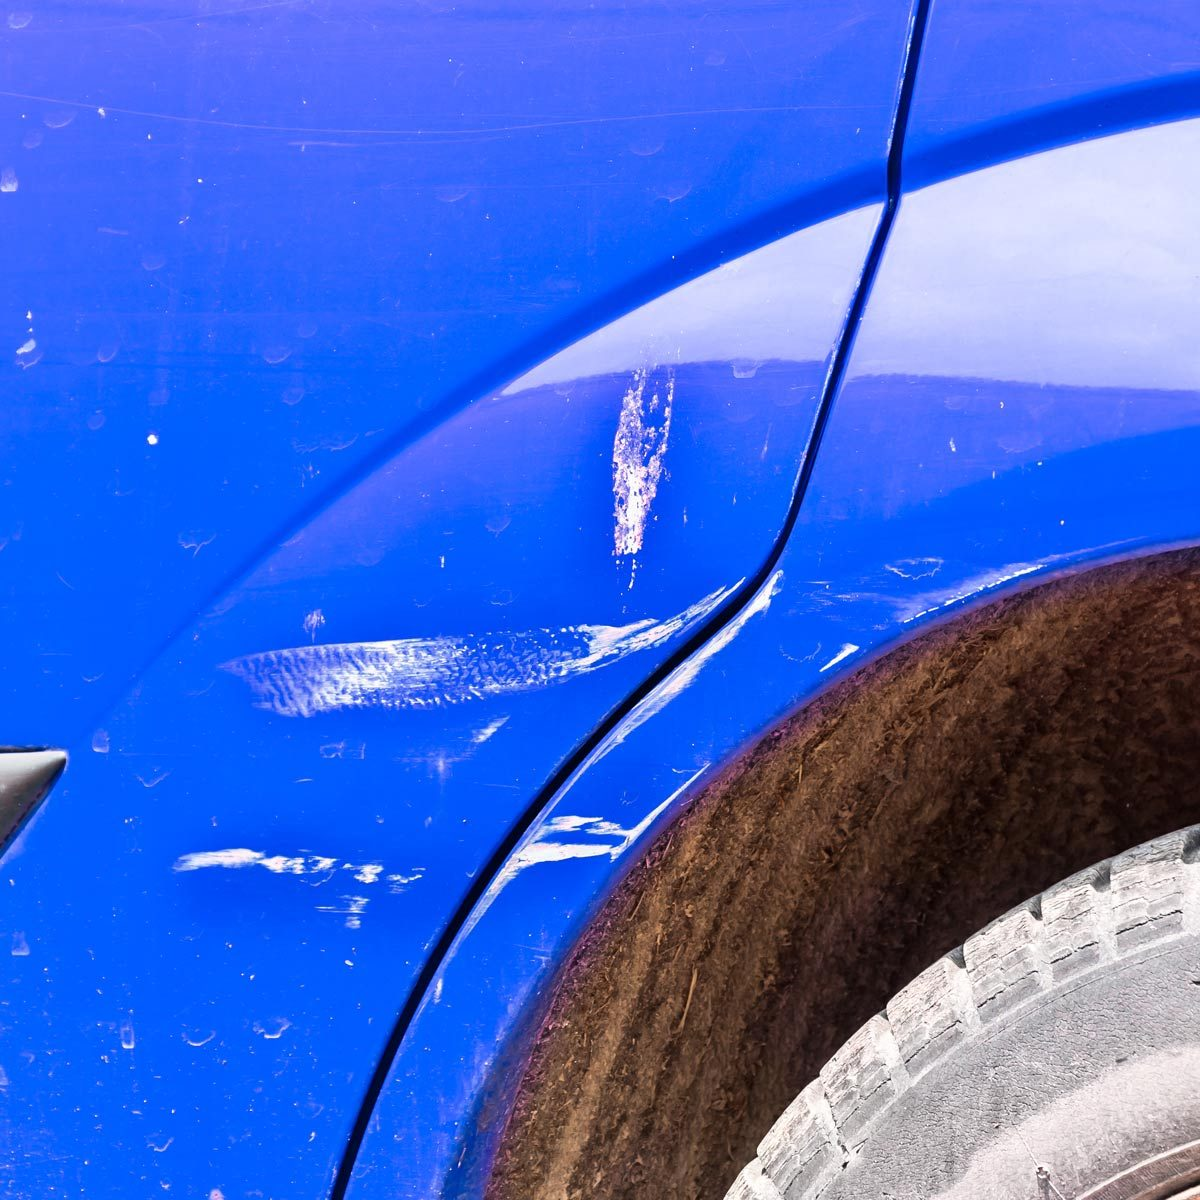 Blue scratched car with damaged paint